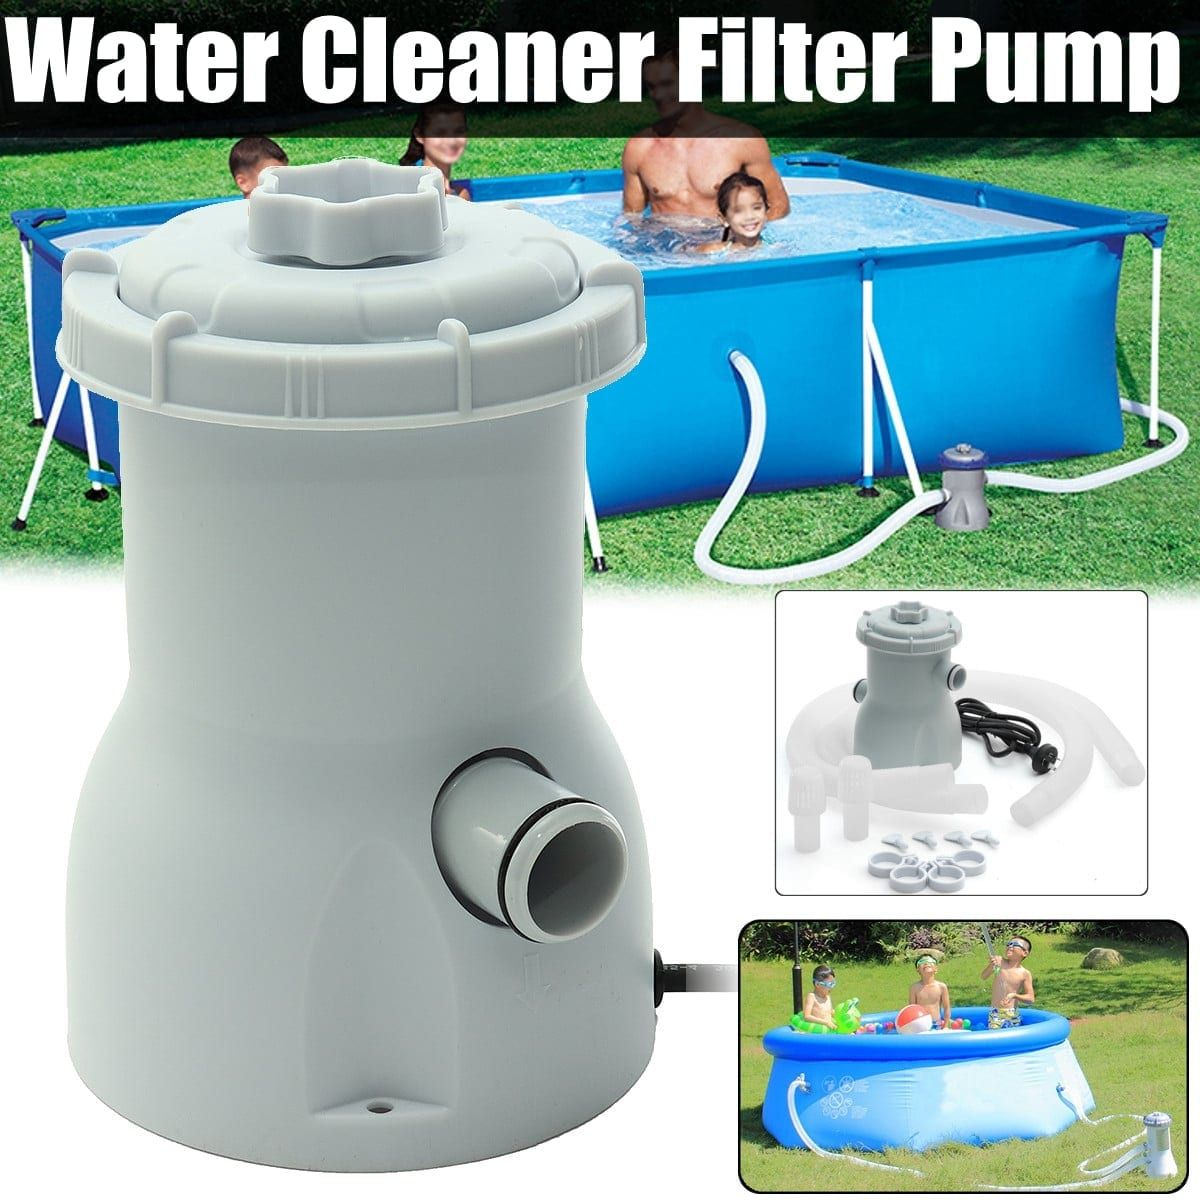 This Lovely 220v Inflatable Pool Filter Pump System Small Pool Filter Is On Flash Sale At 50 Off For Only Inflatable Pool Swimming Pool Water Pool Filters